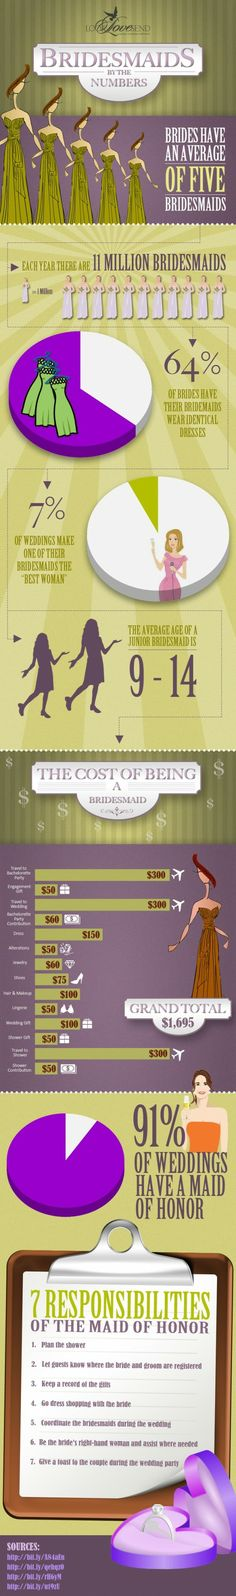 the cost of being a bridesmaid - Wedding Day Pins : You're #1 Source for Wedding Pins!